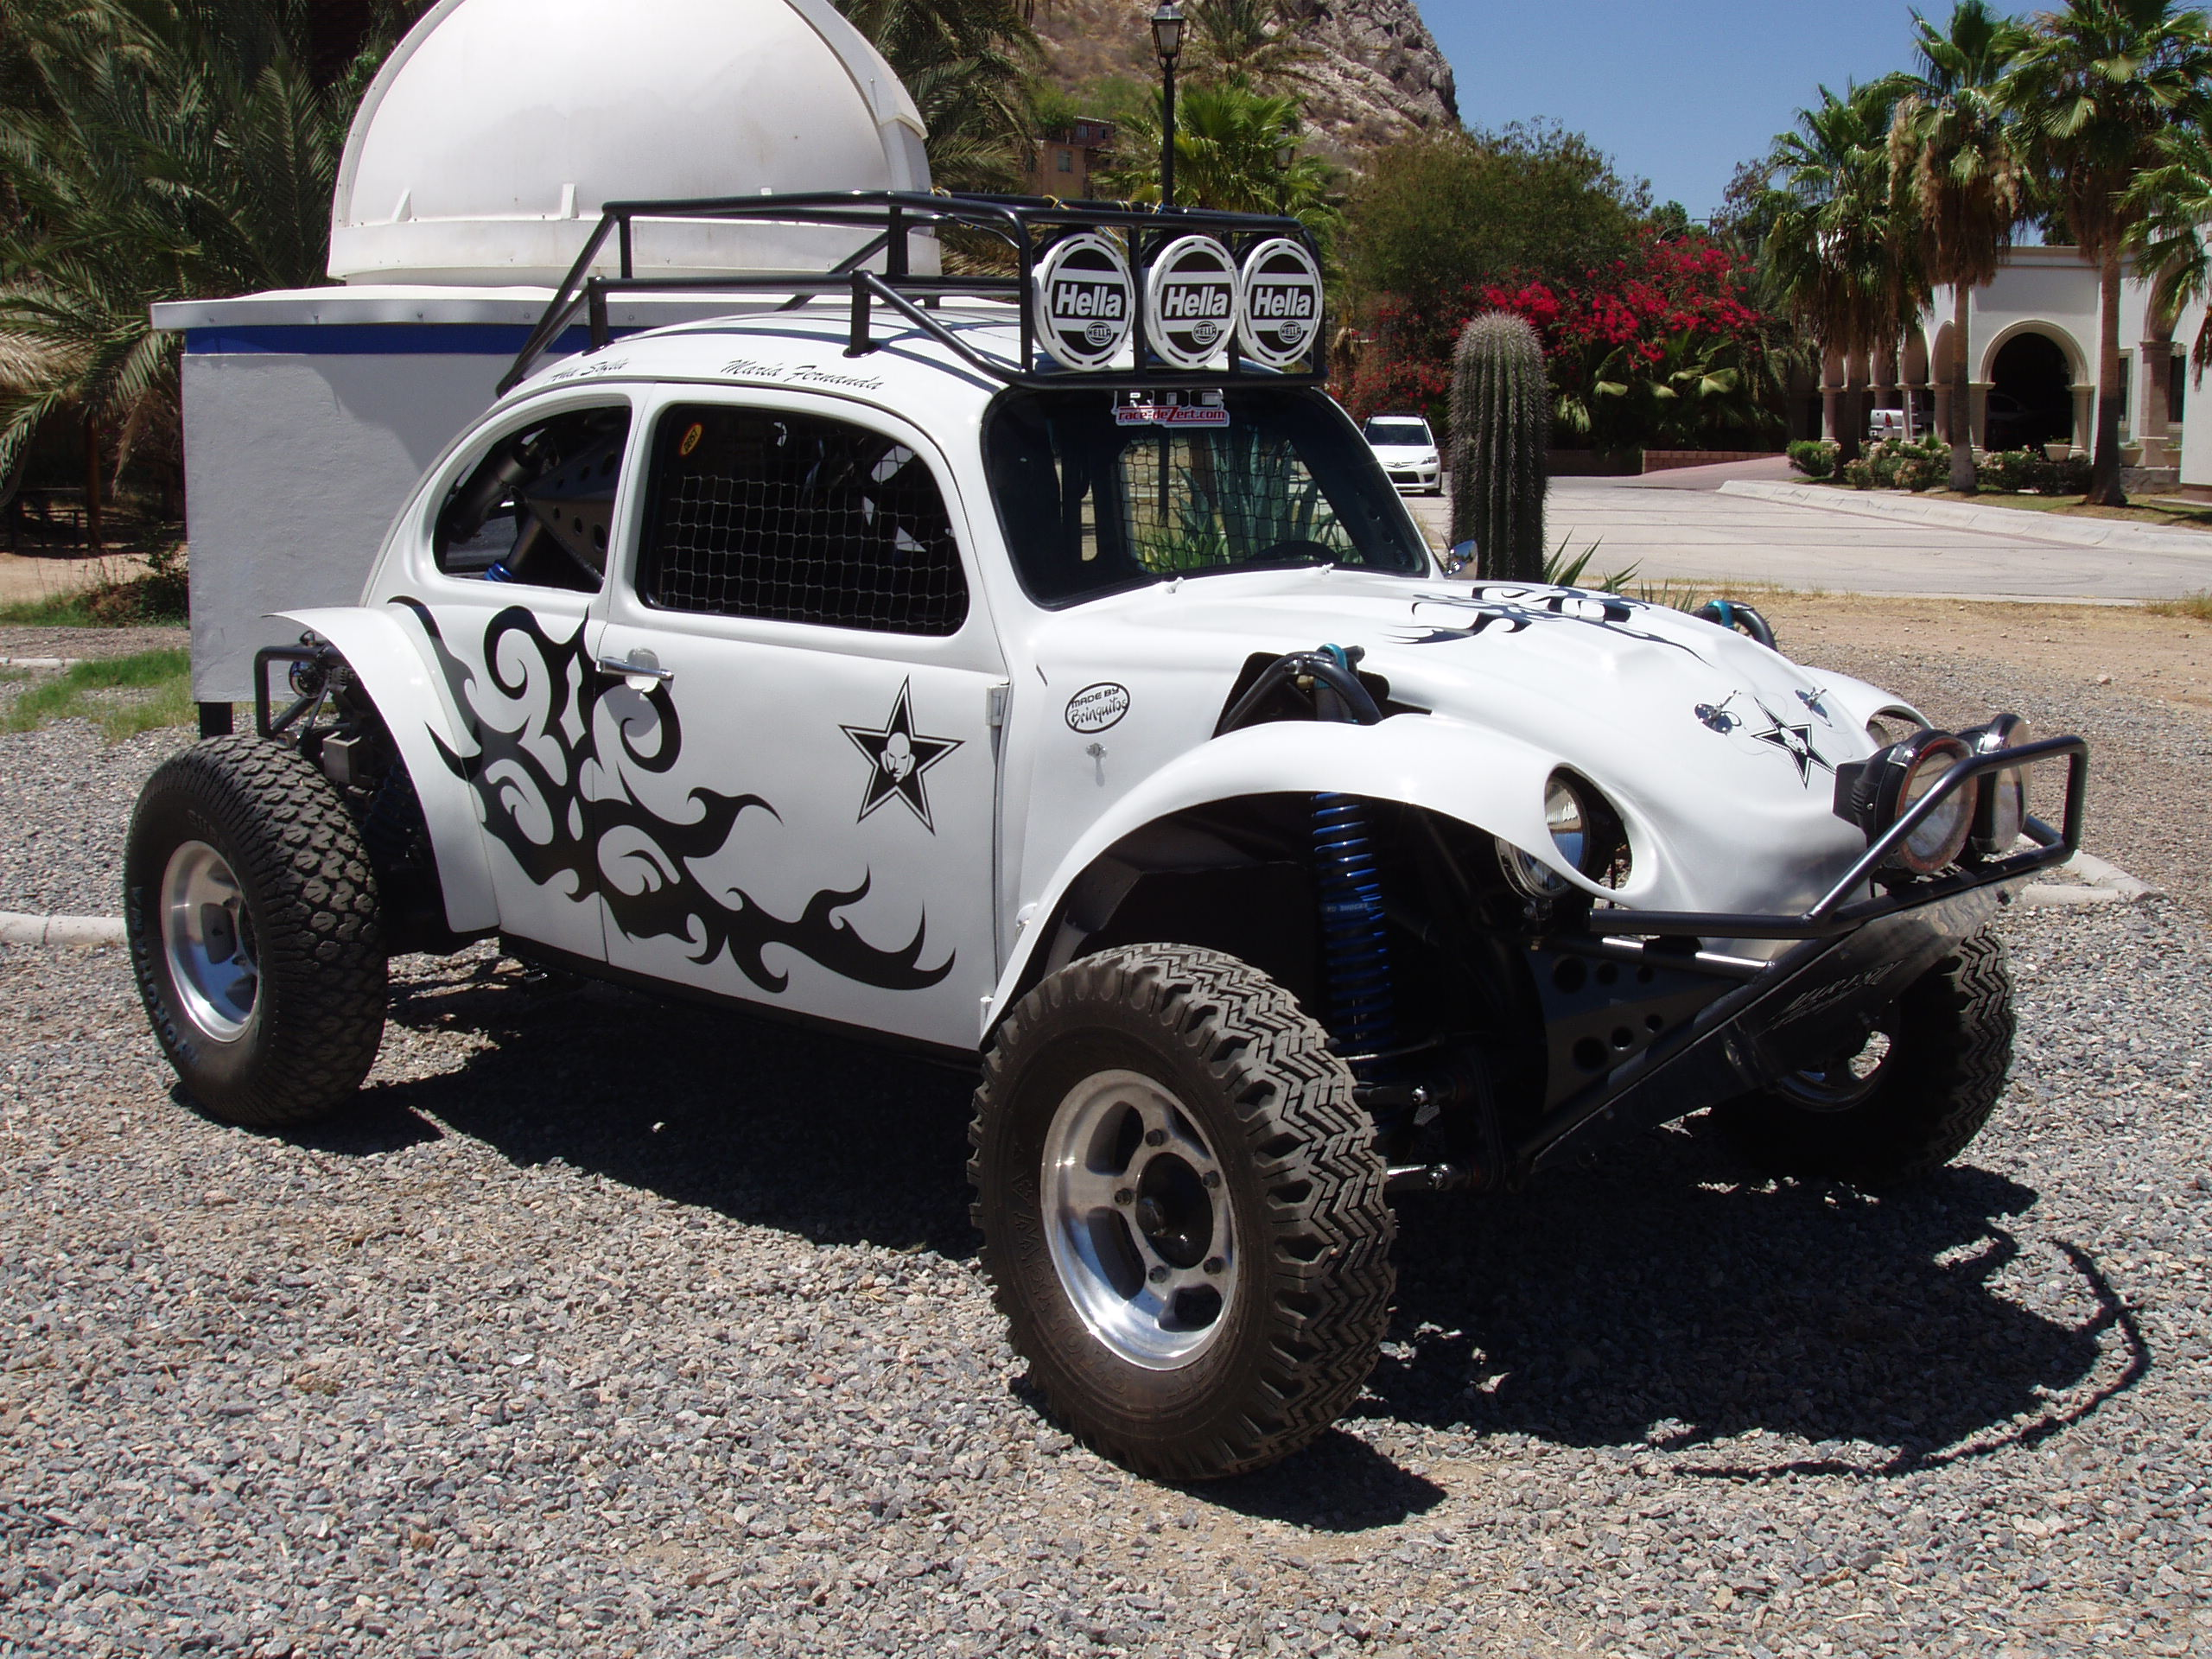 Volkswagon Baja Offroad Race Racing Bug Beetle Baja Bug